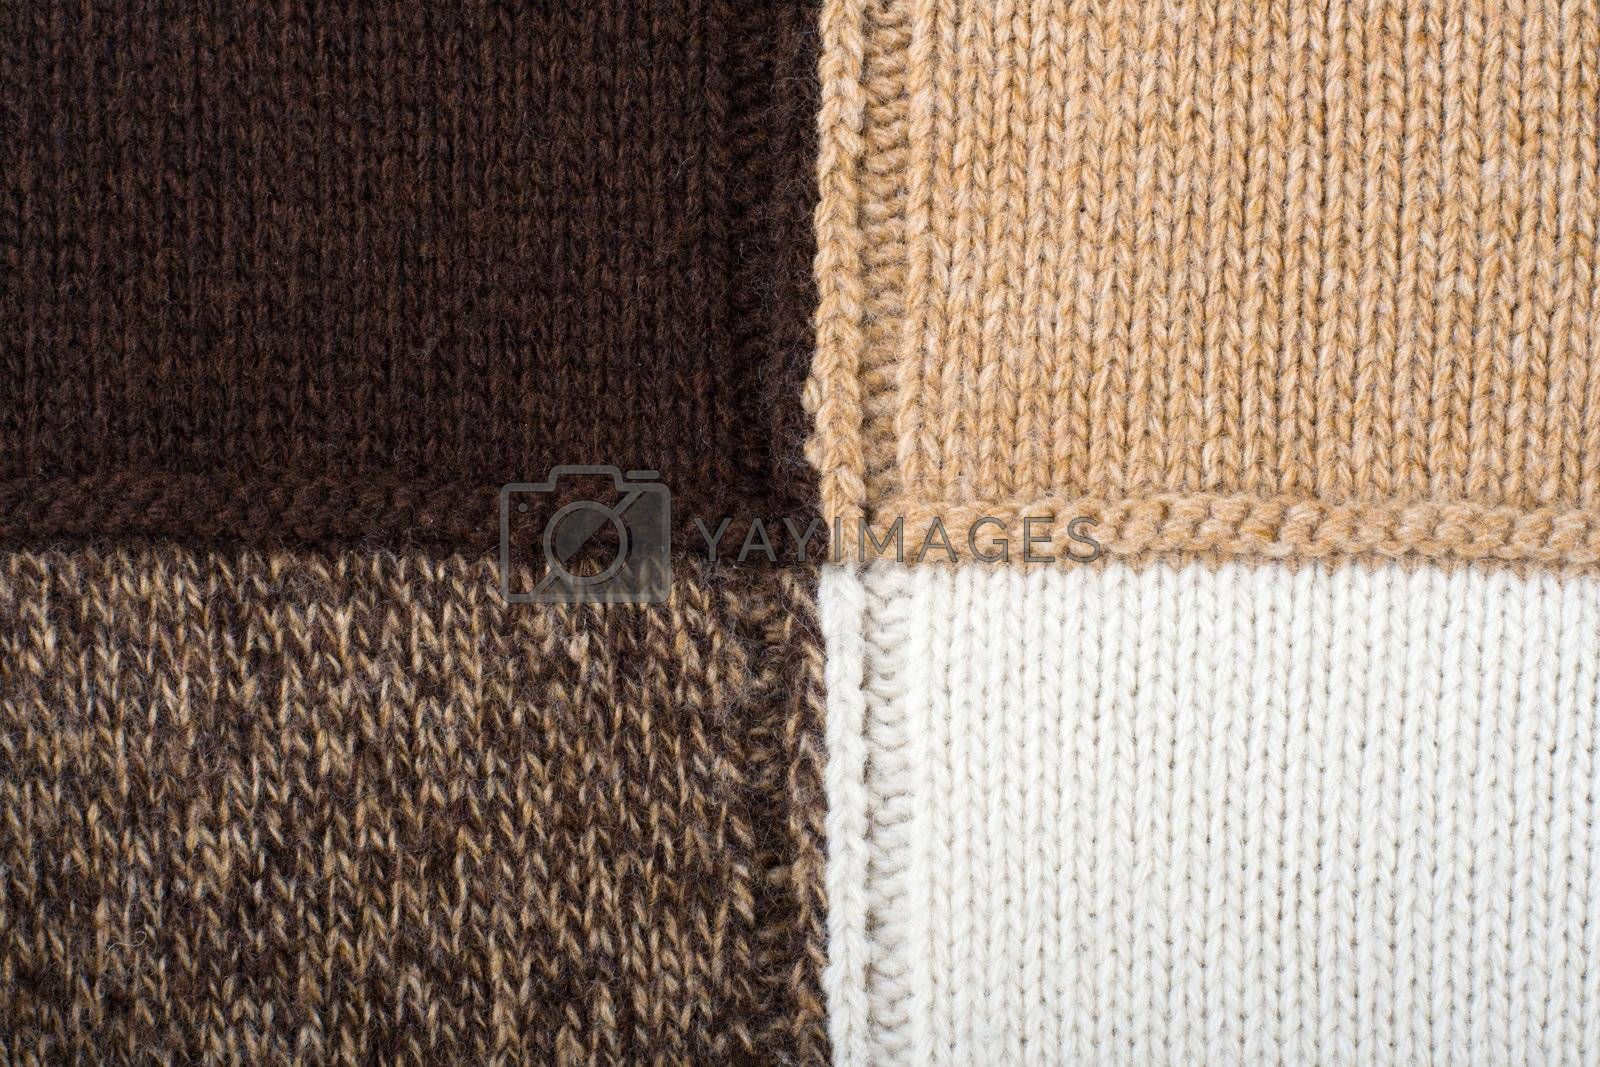 Knitted textile Abstract Backgrounds  by SergeyAK